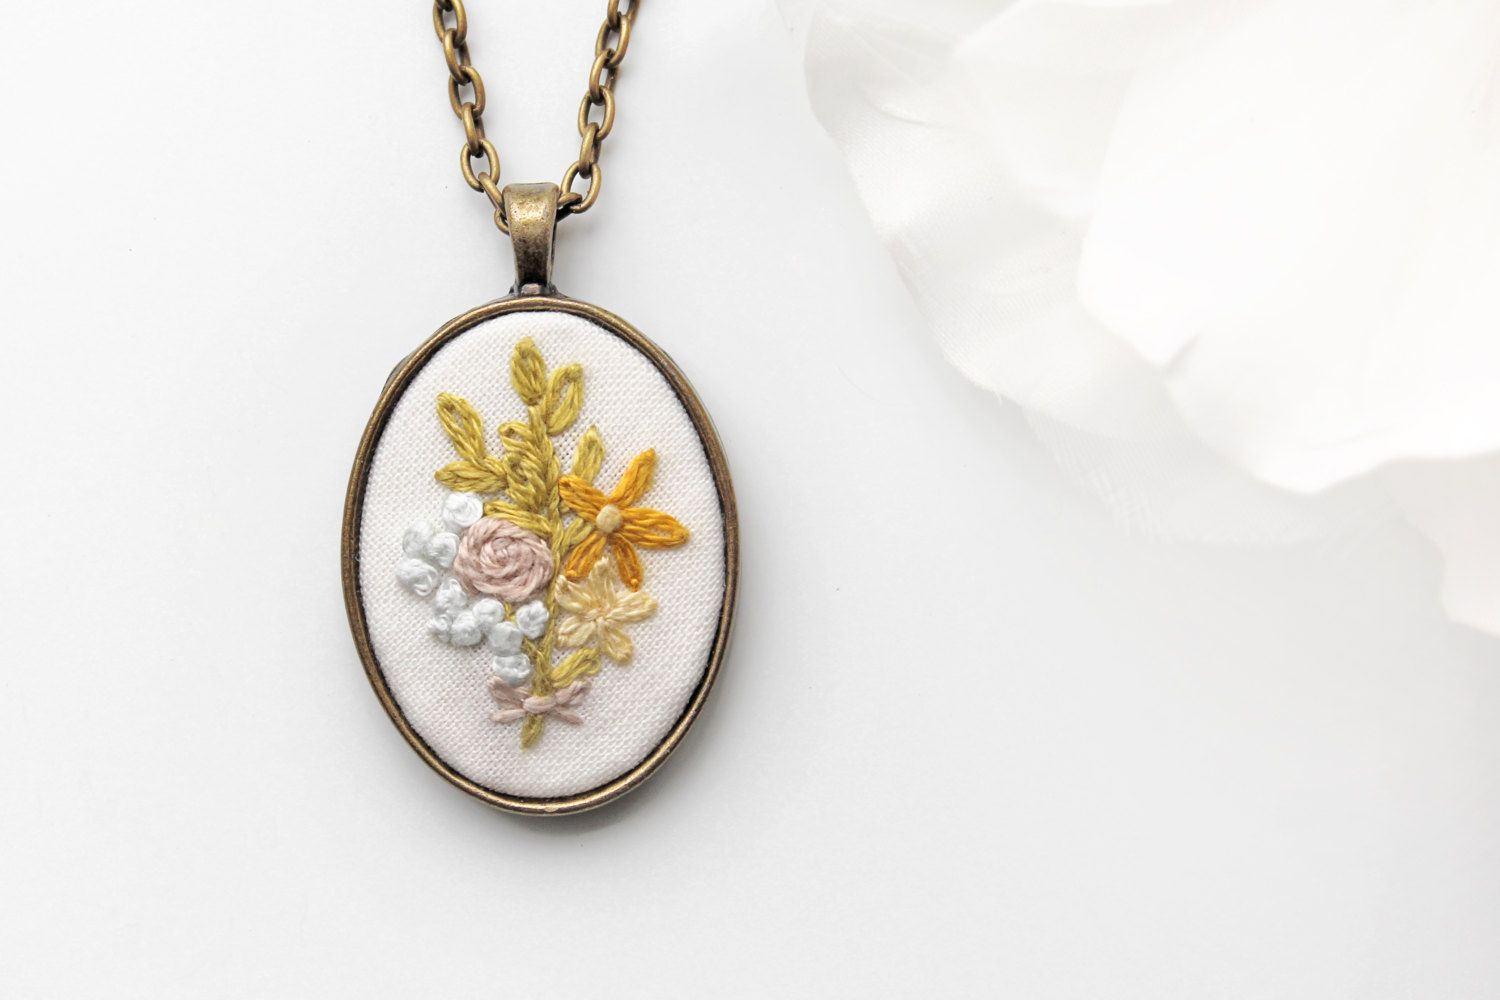 Floral Jewelry. Jewelry Floral. Floral by ohmyheartembroidery